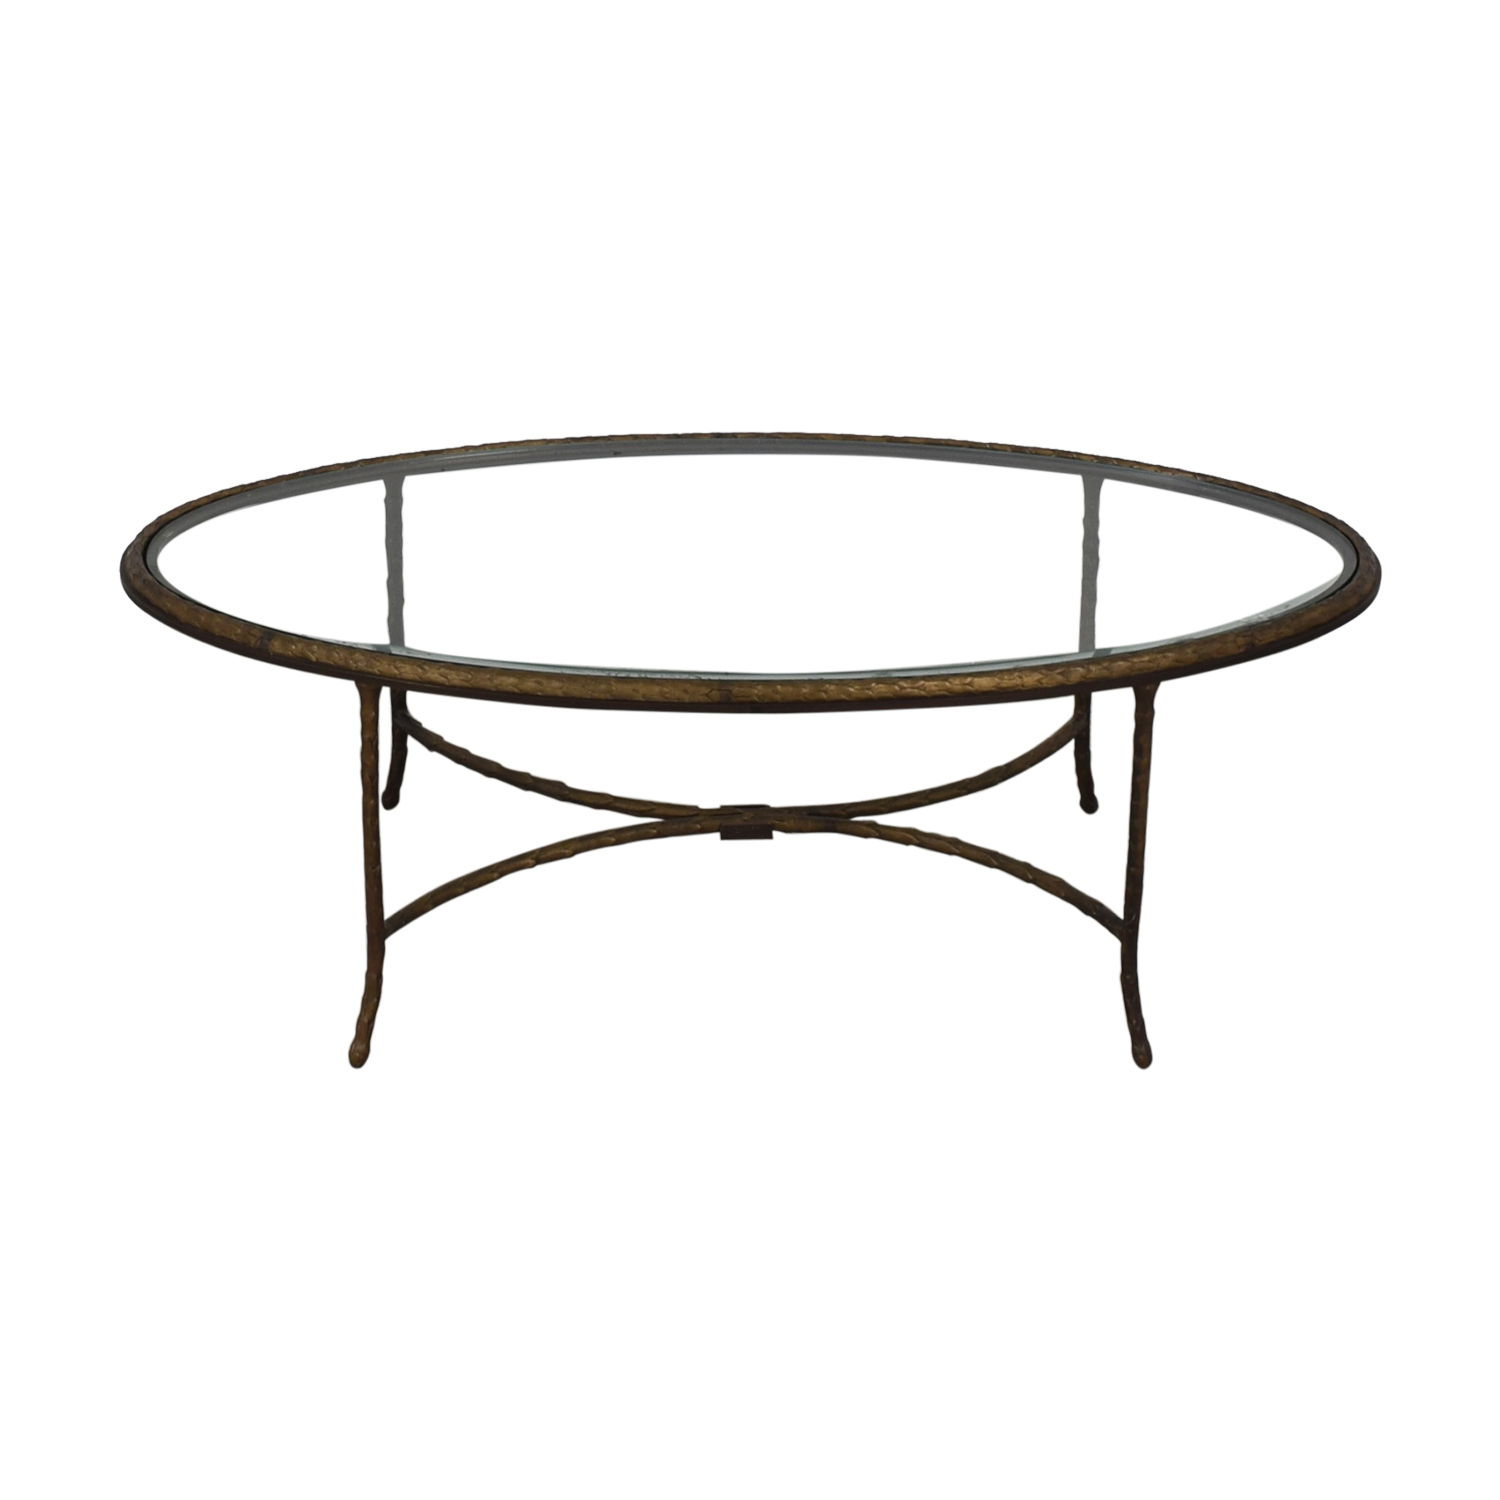 Oval Glass Top Coffee Table used